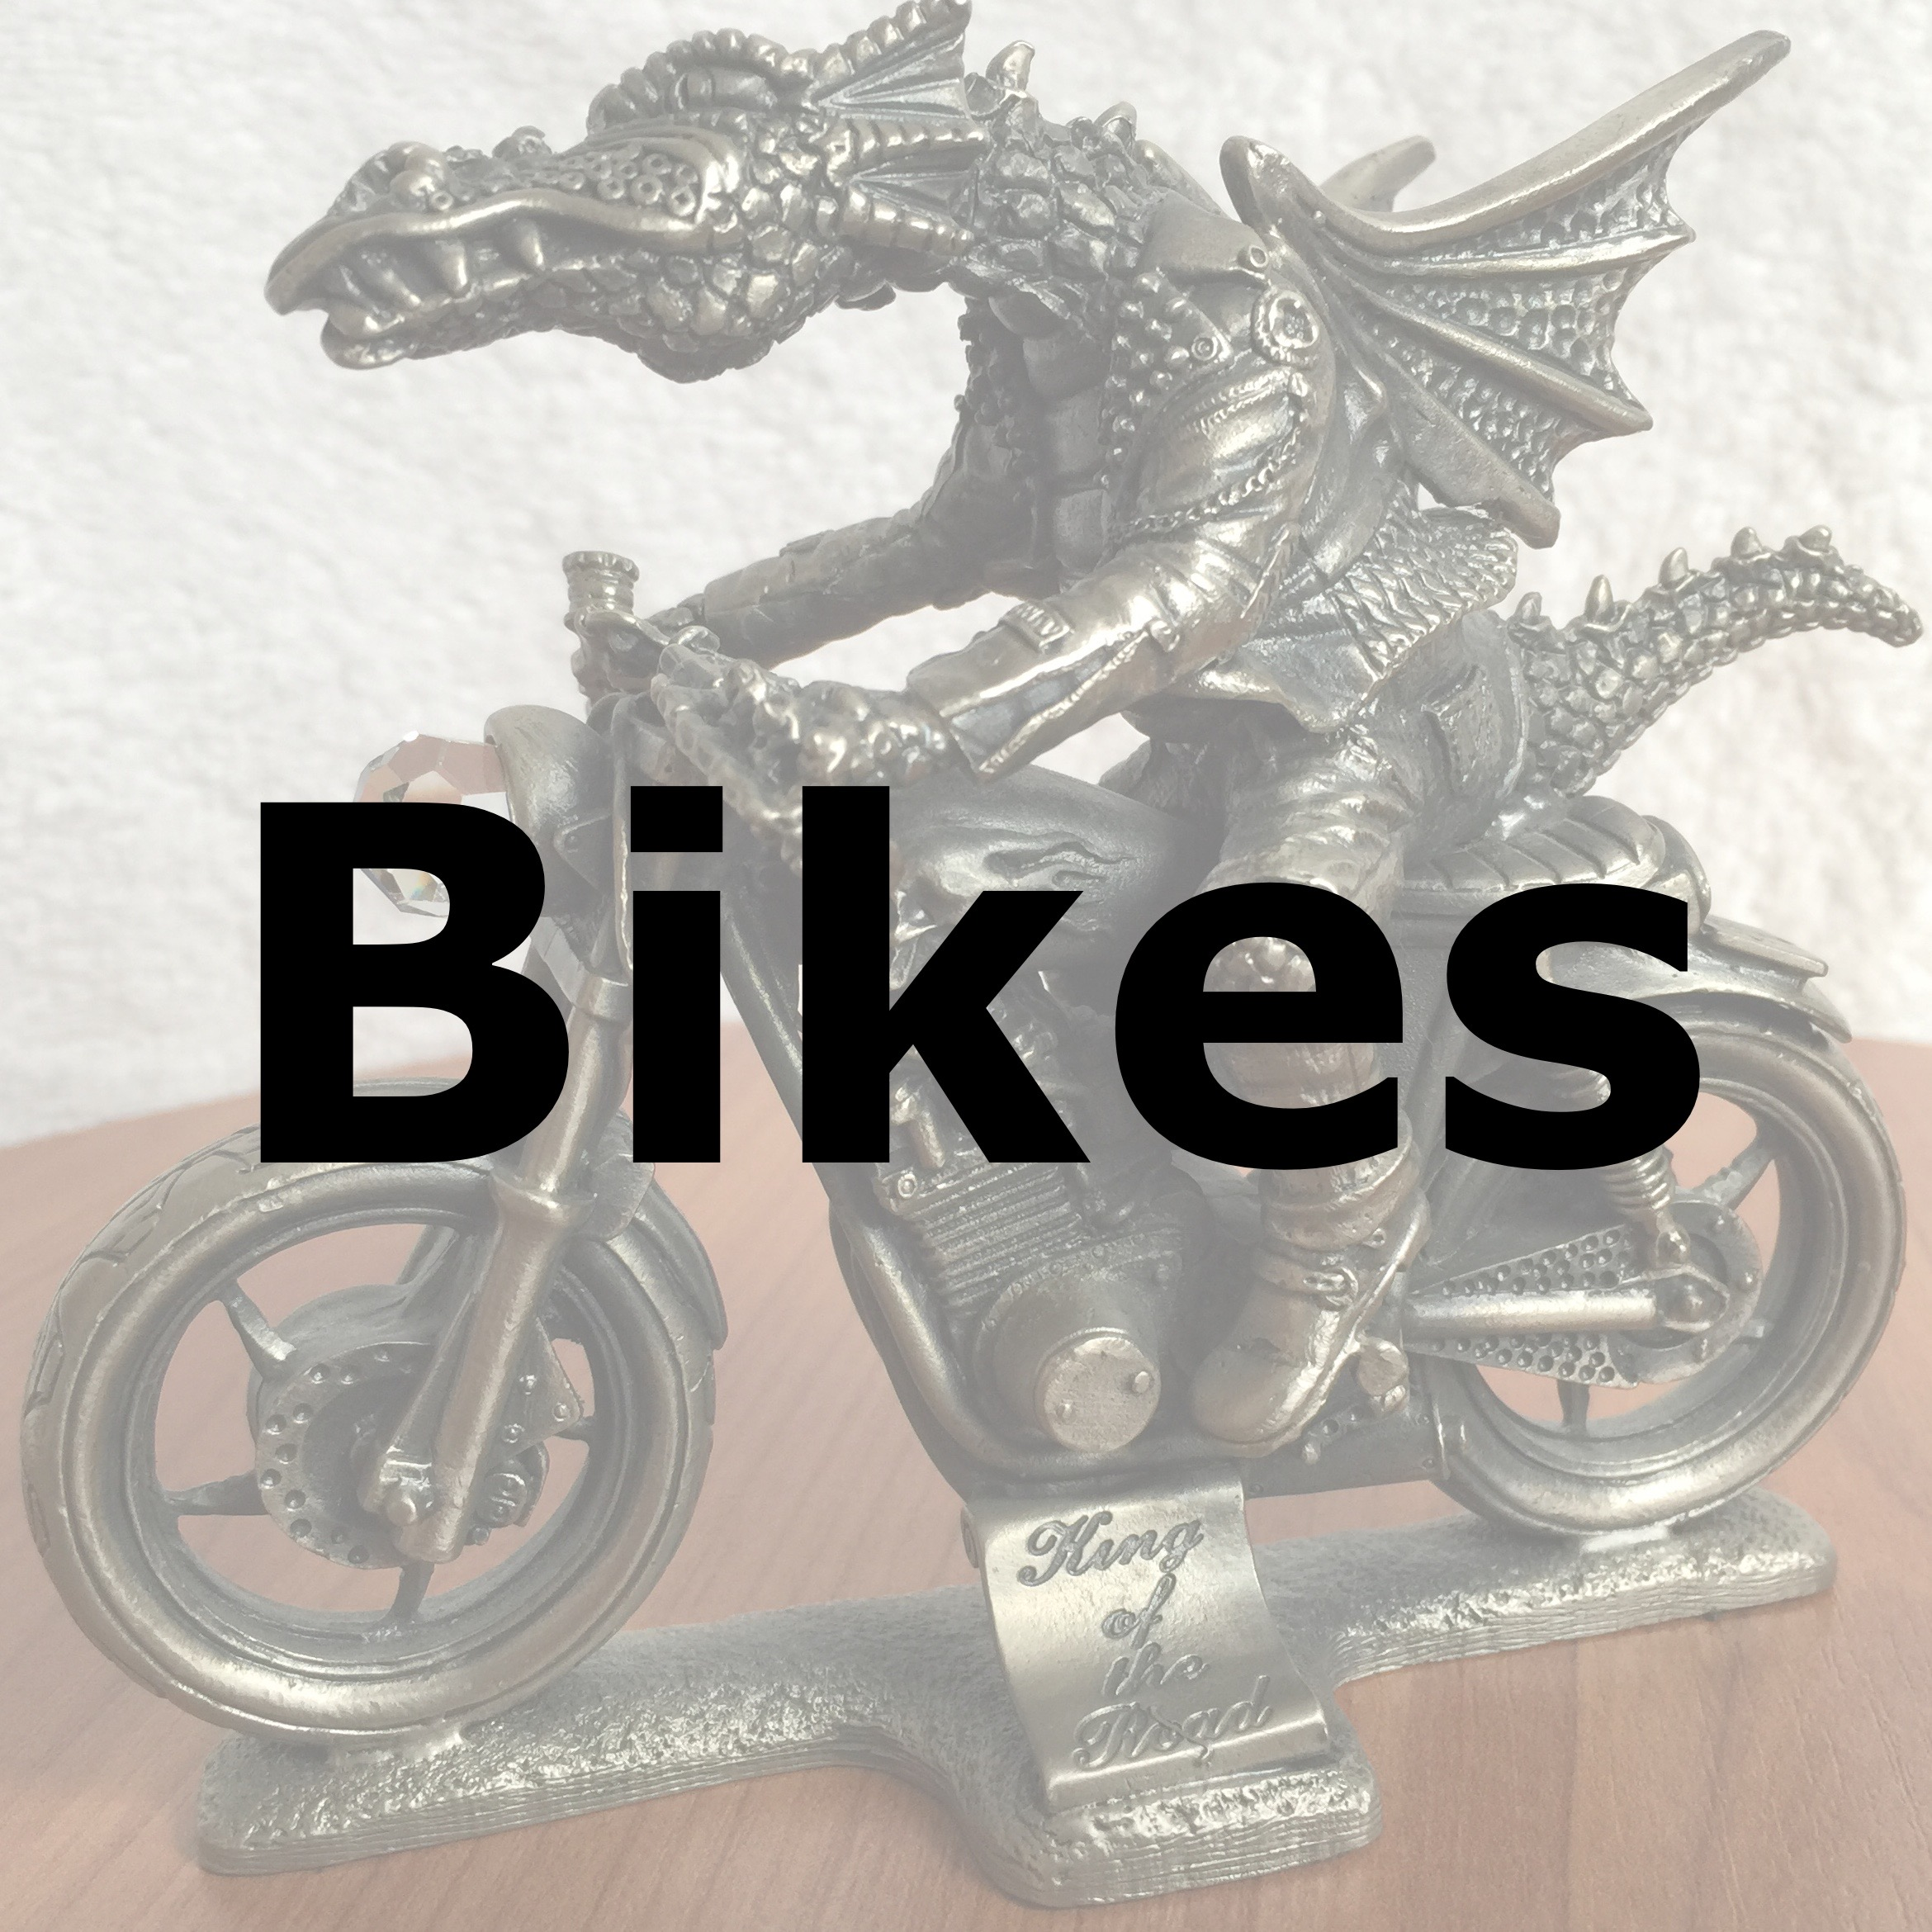 Image of a dragon on a motorbike